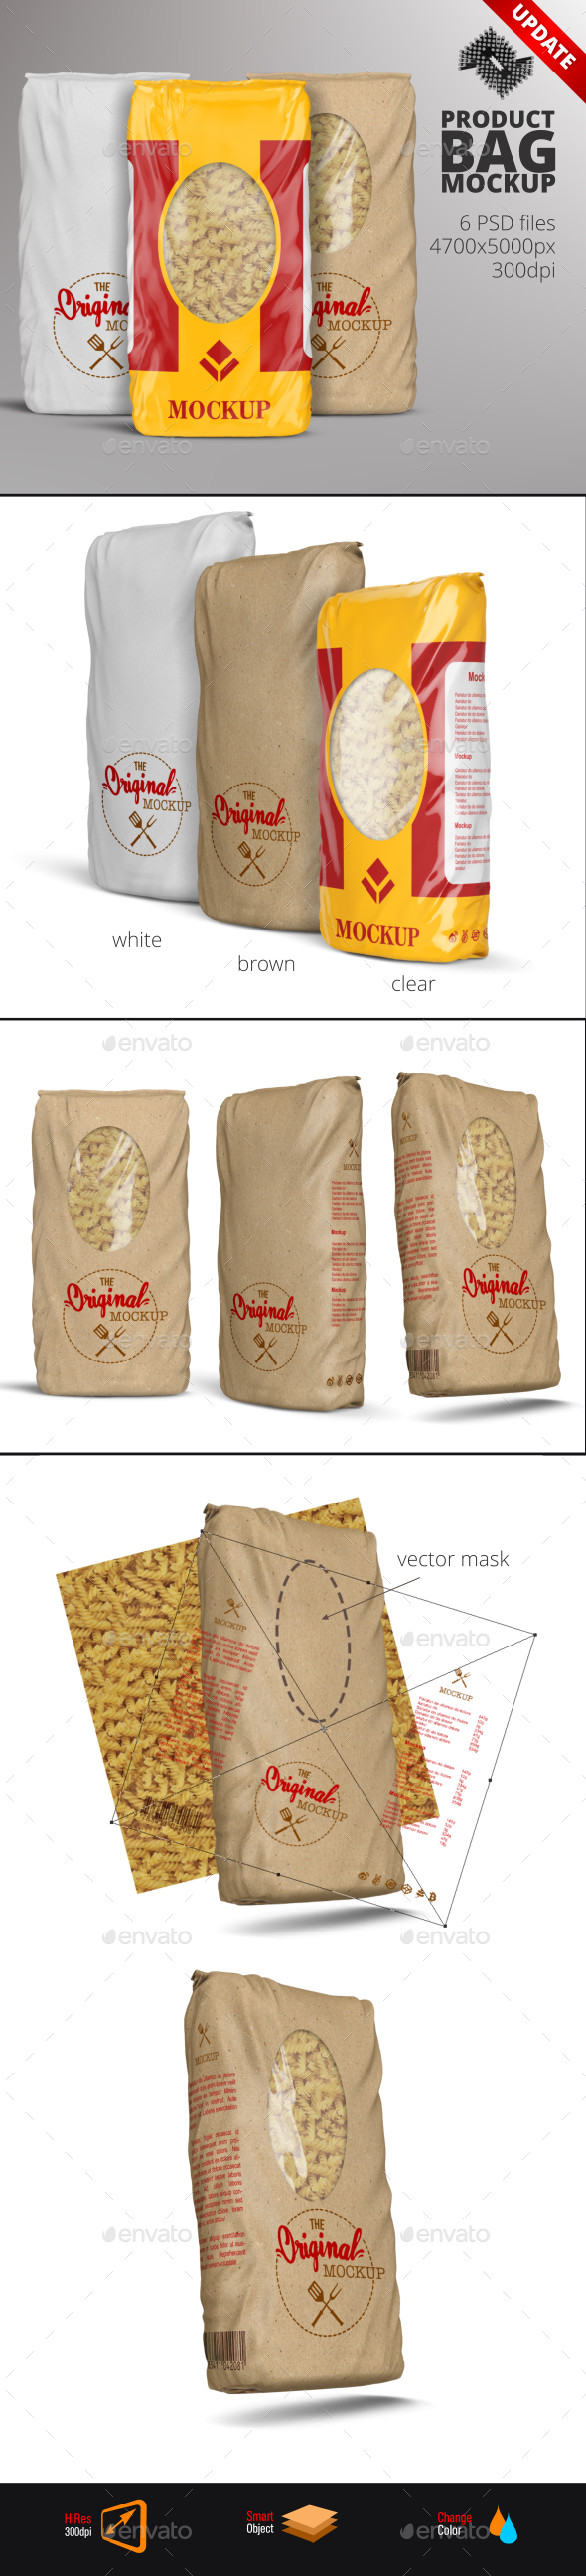 Plastic & Paper Product Bag Mockup - Food and Drink Packaging